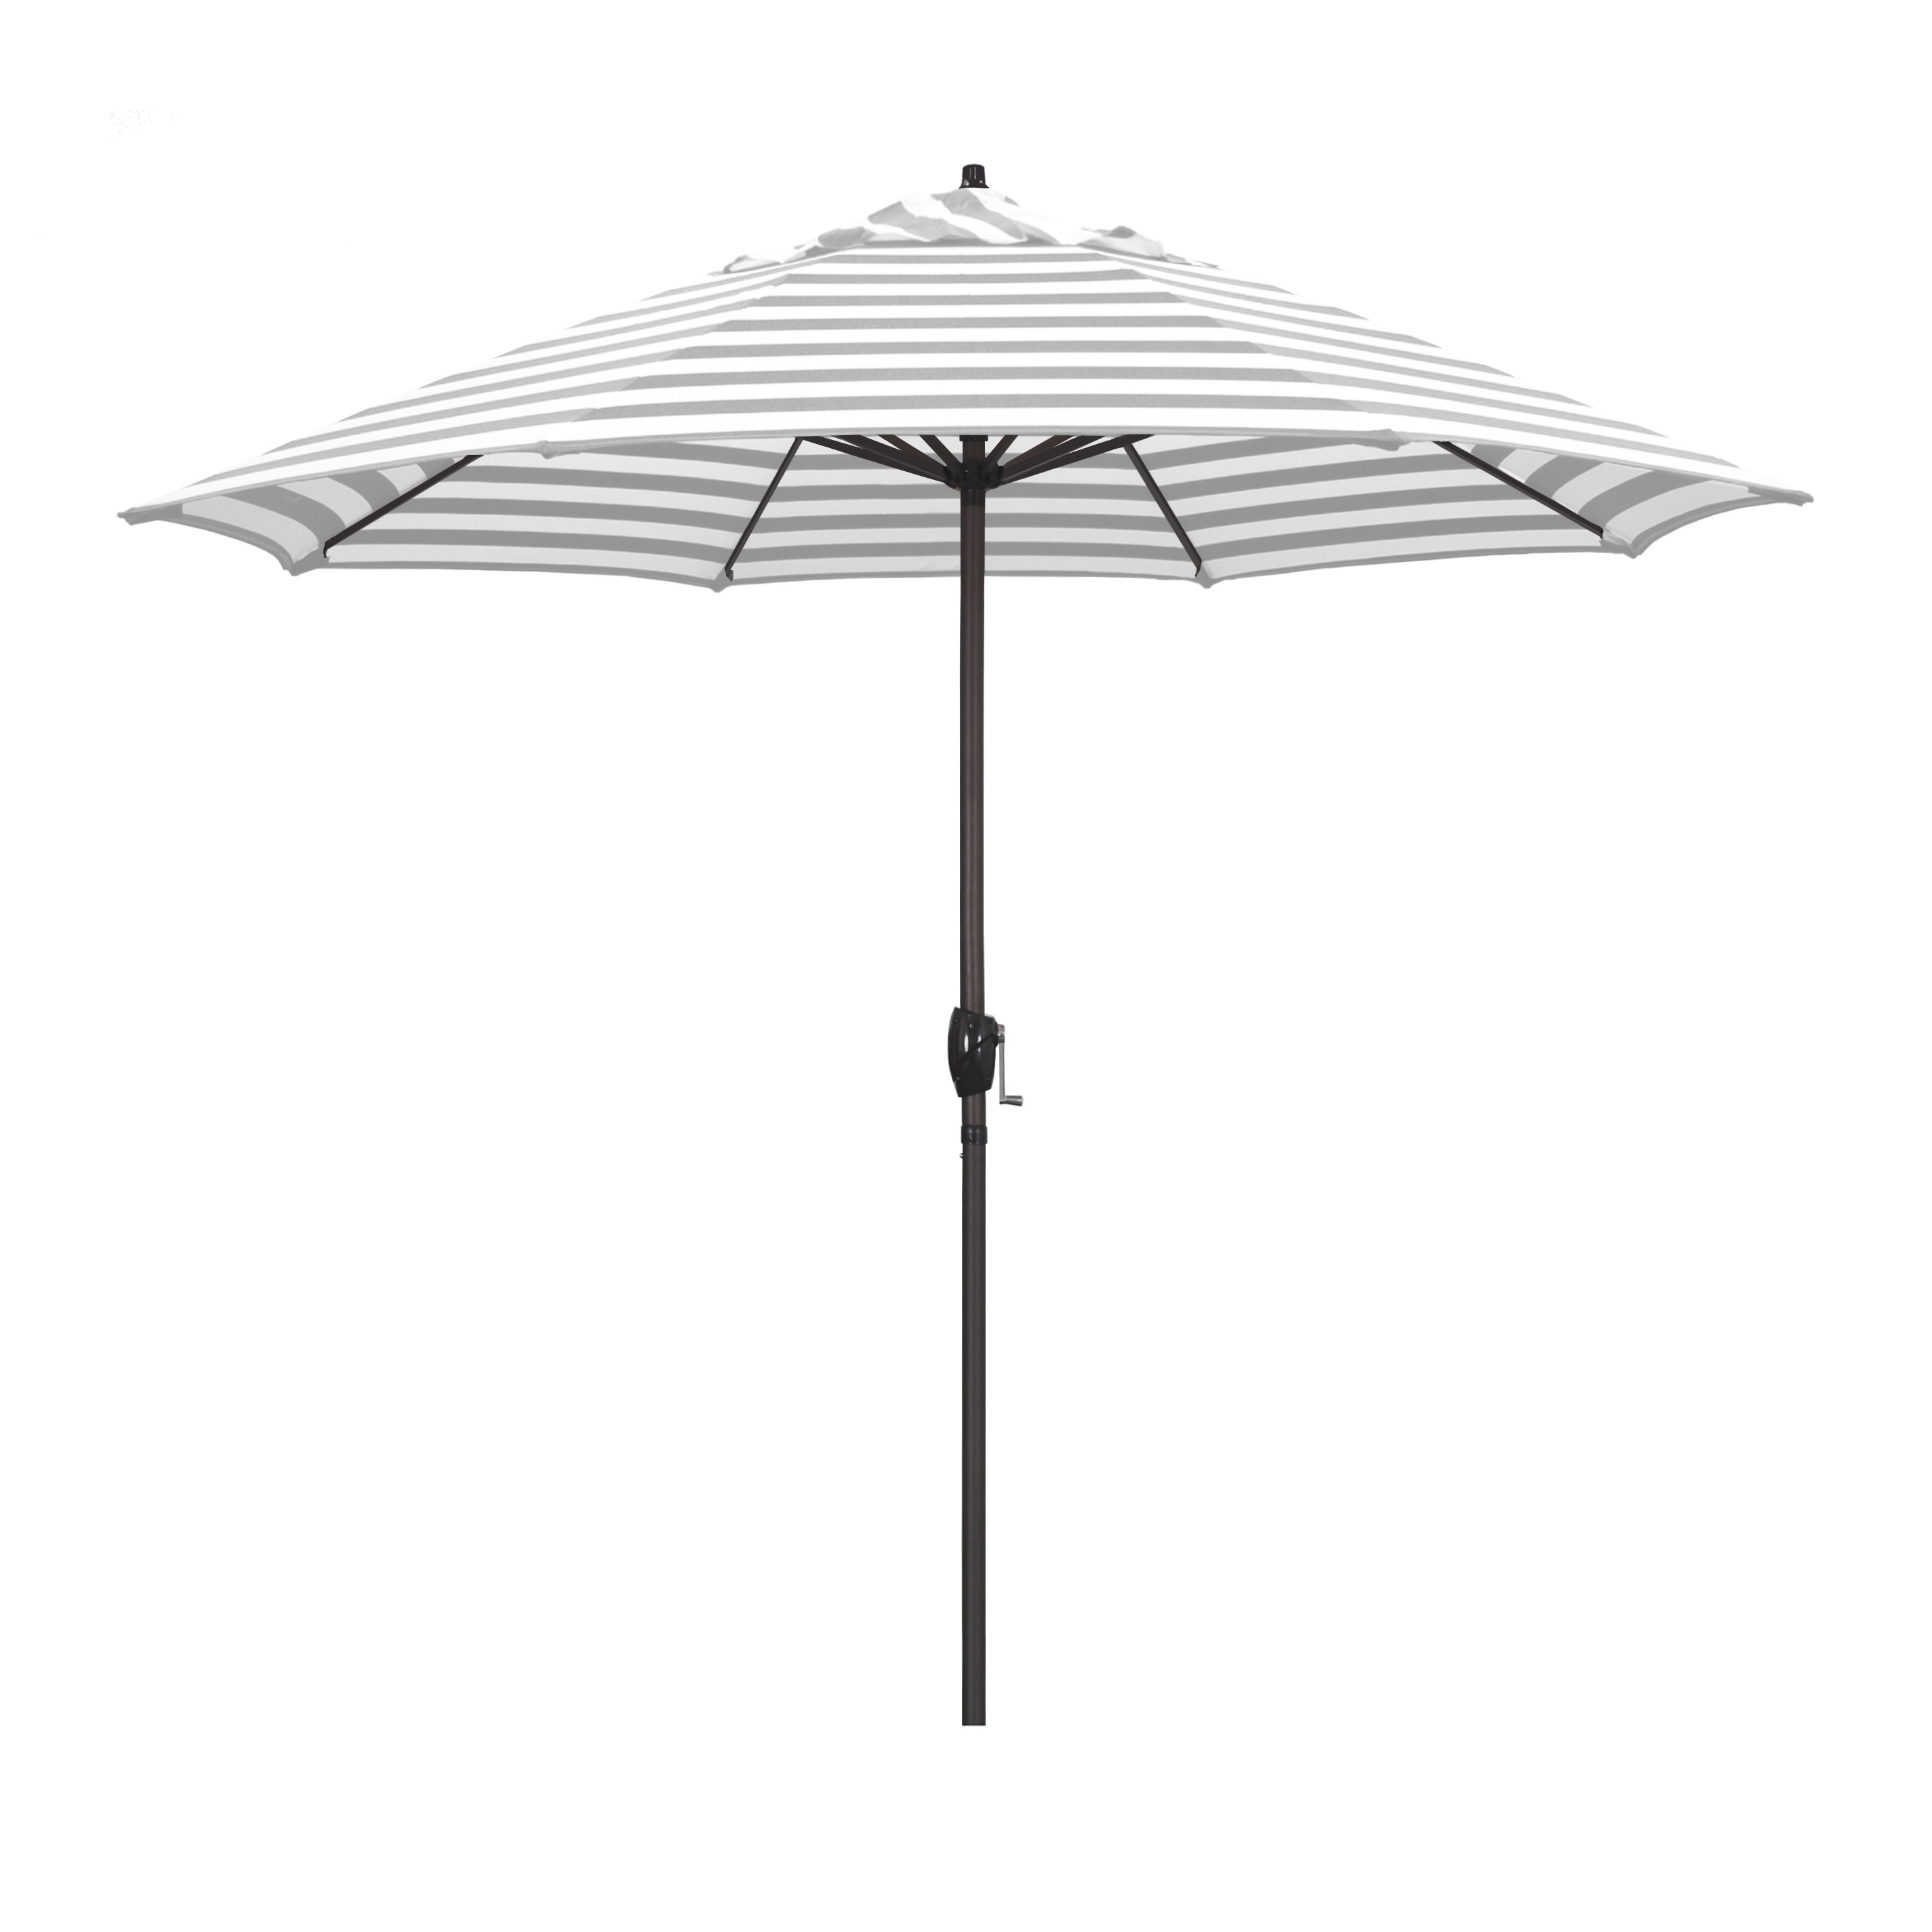 Cardine 9' Market Umbrella Intended For Newest Cardine Market Umbrellas (View 5 of 20)